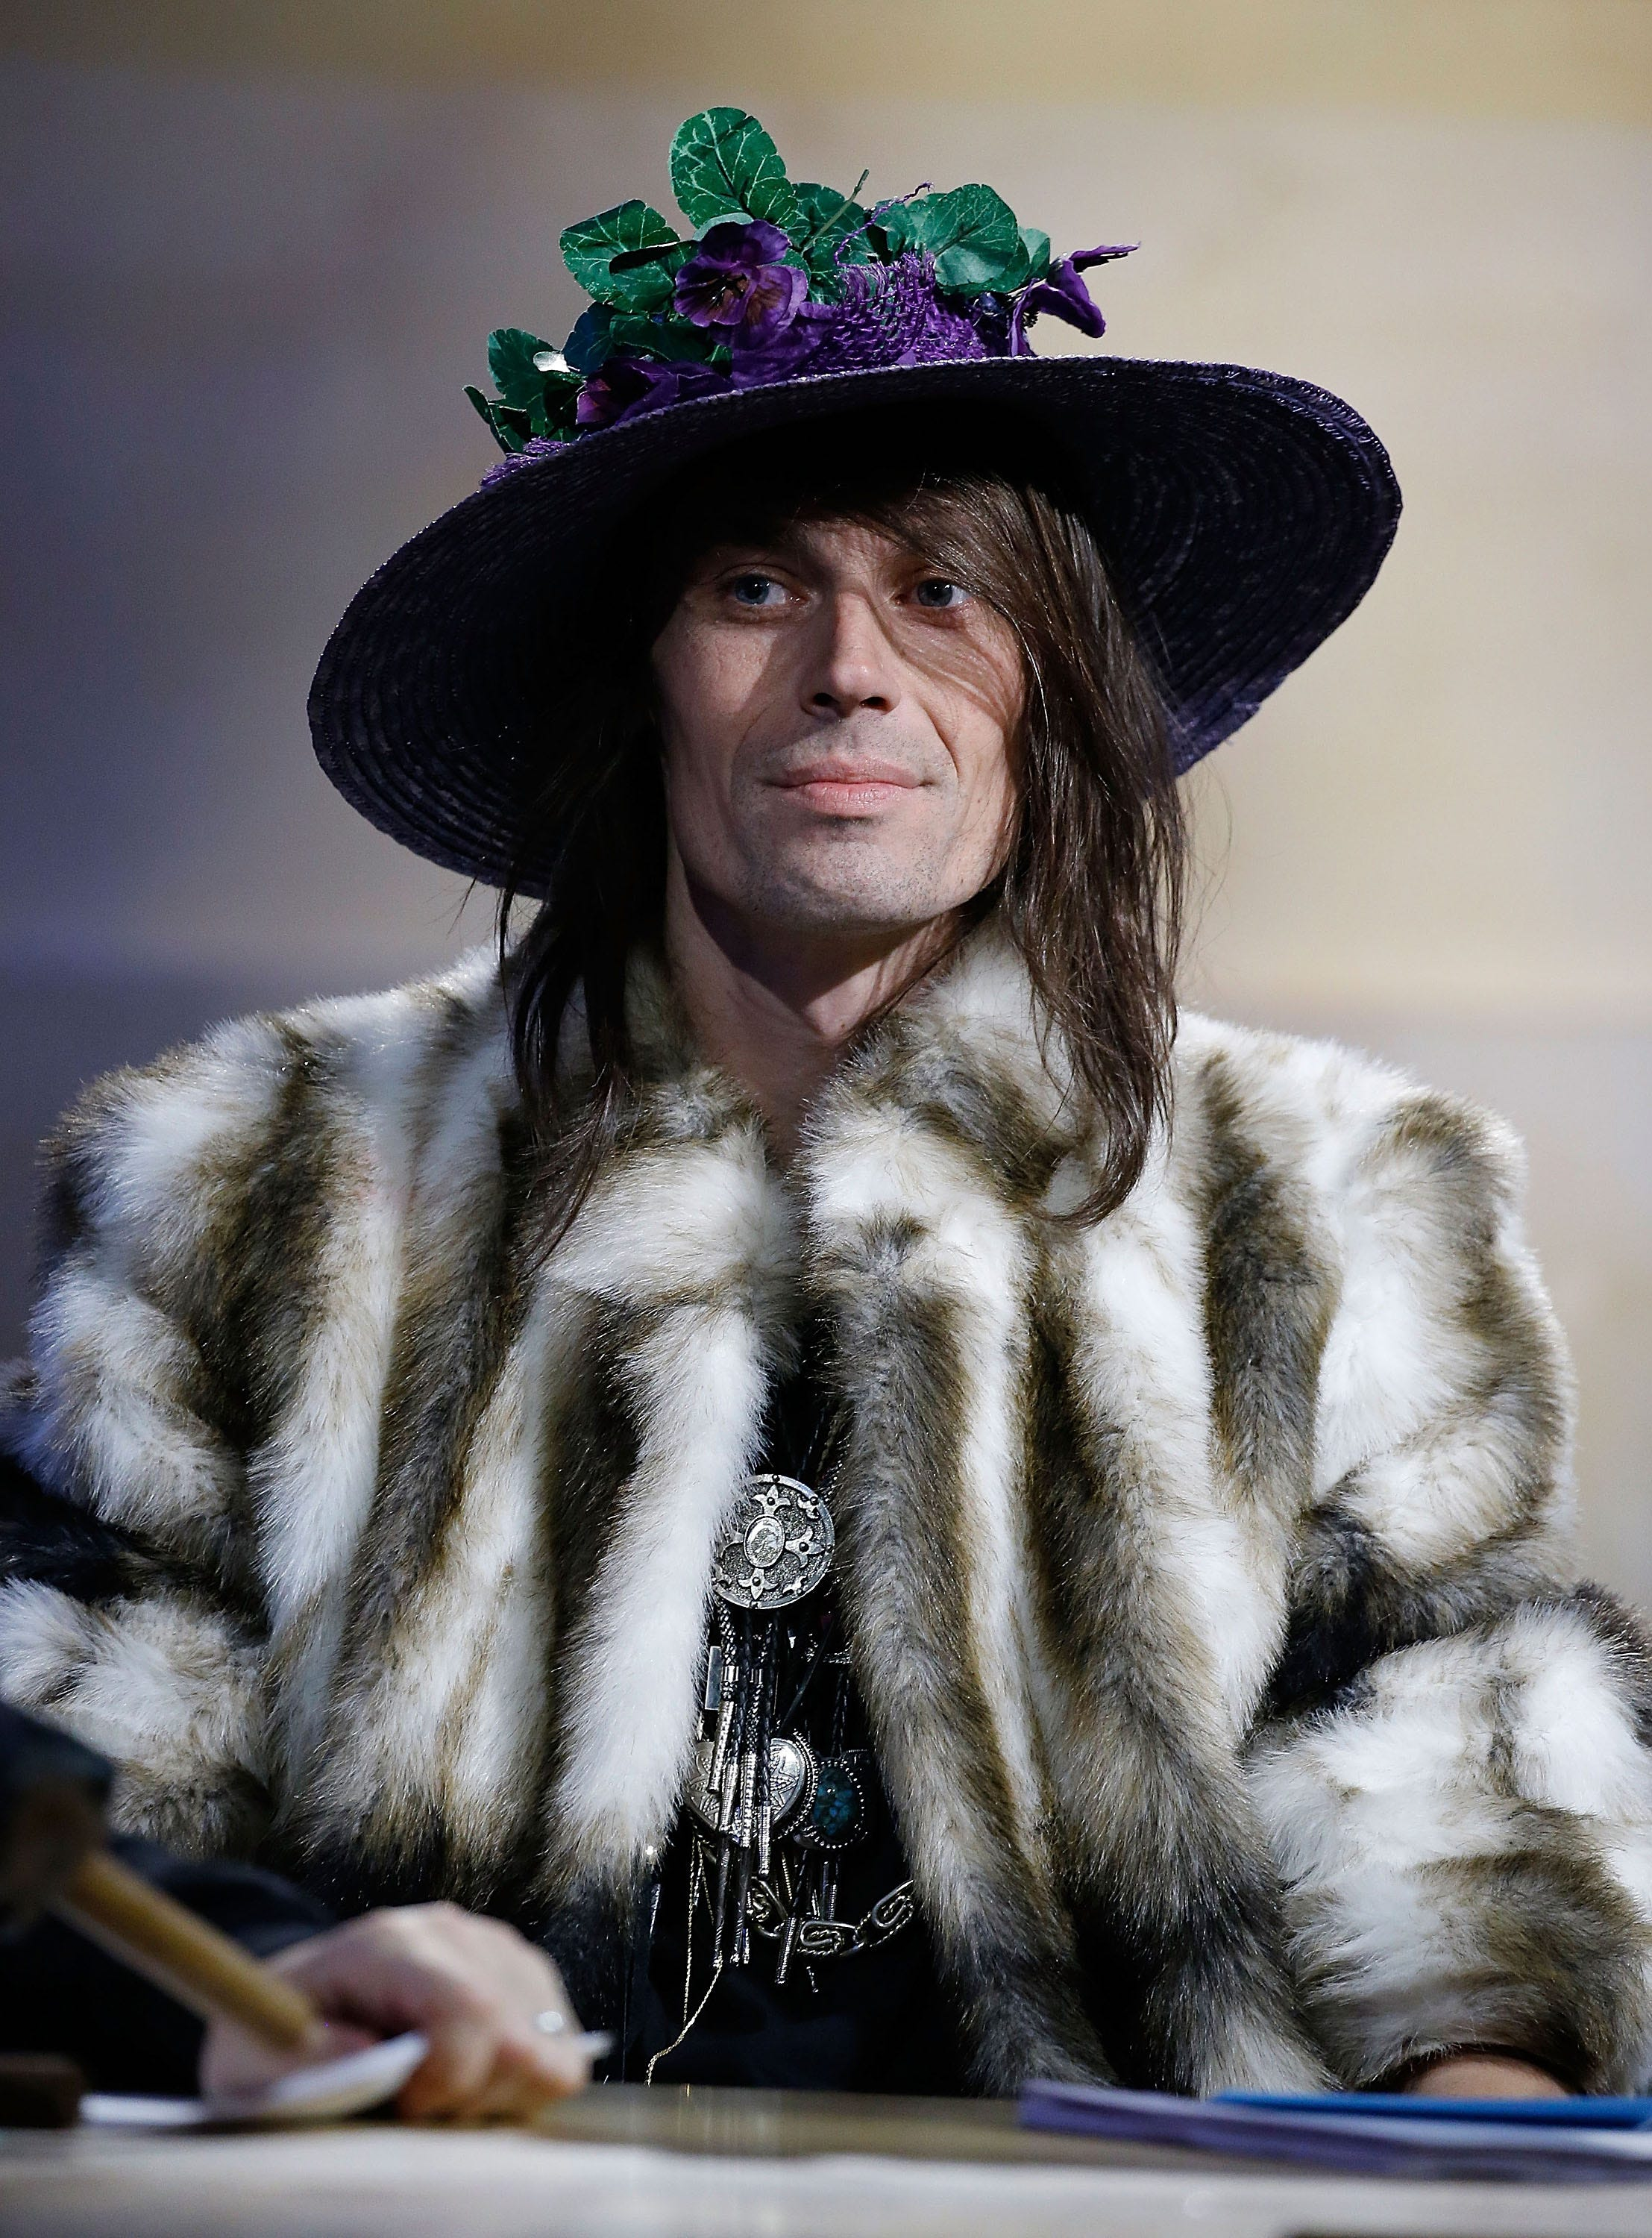 Jesse Camp, star of MTV's 'Wanna Be a VJ,' has been reported missing to police